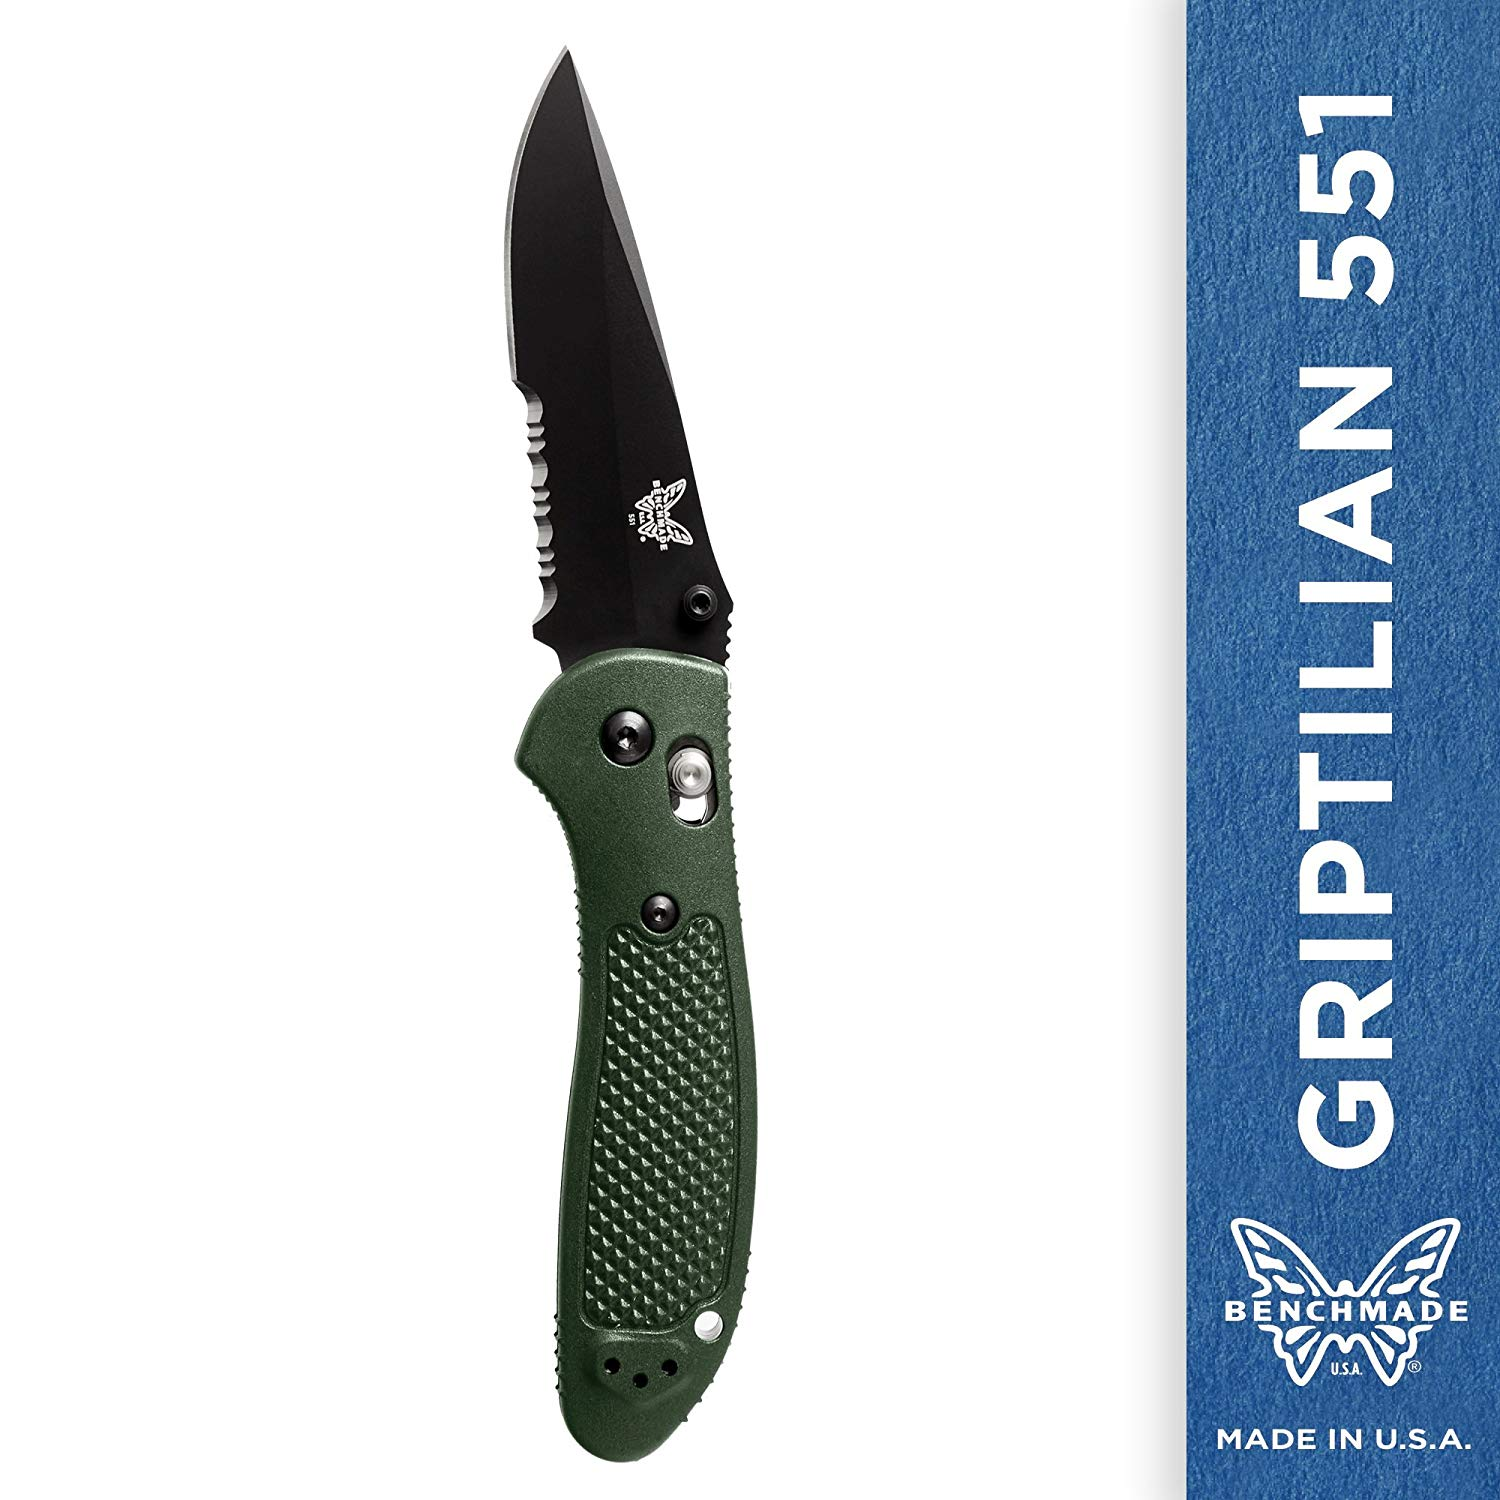 Benchmade Griptilian 551 Knife Drop-Point Blade Olive Handle